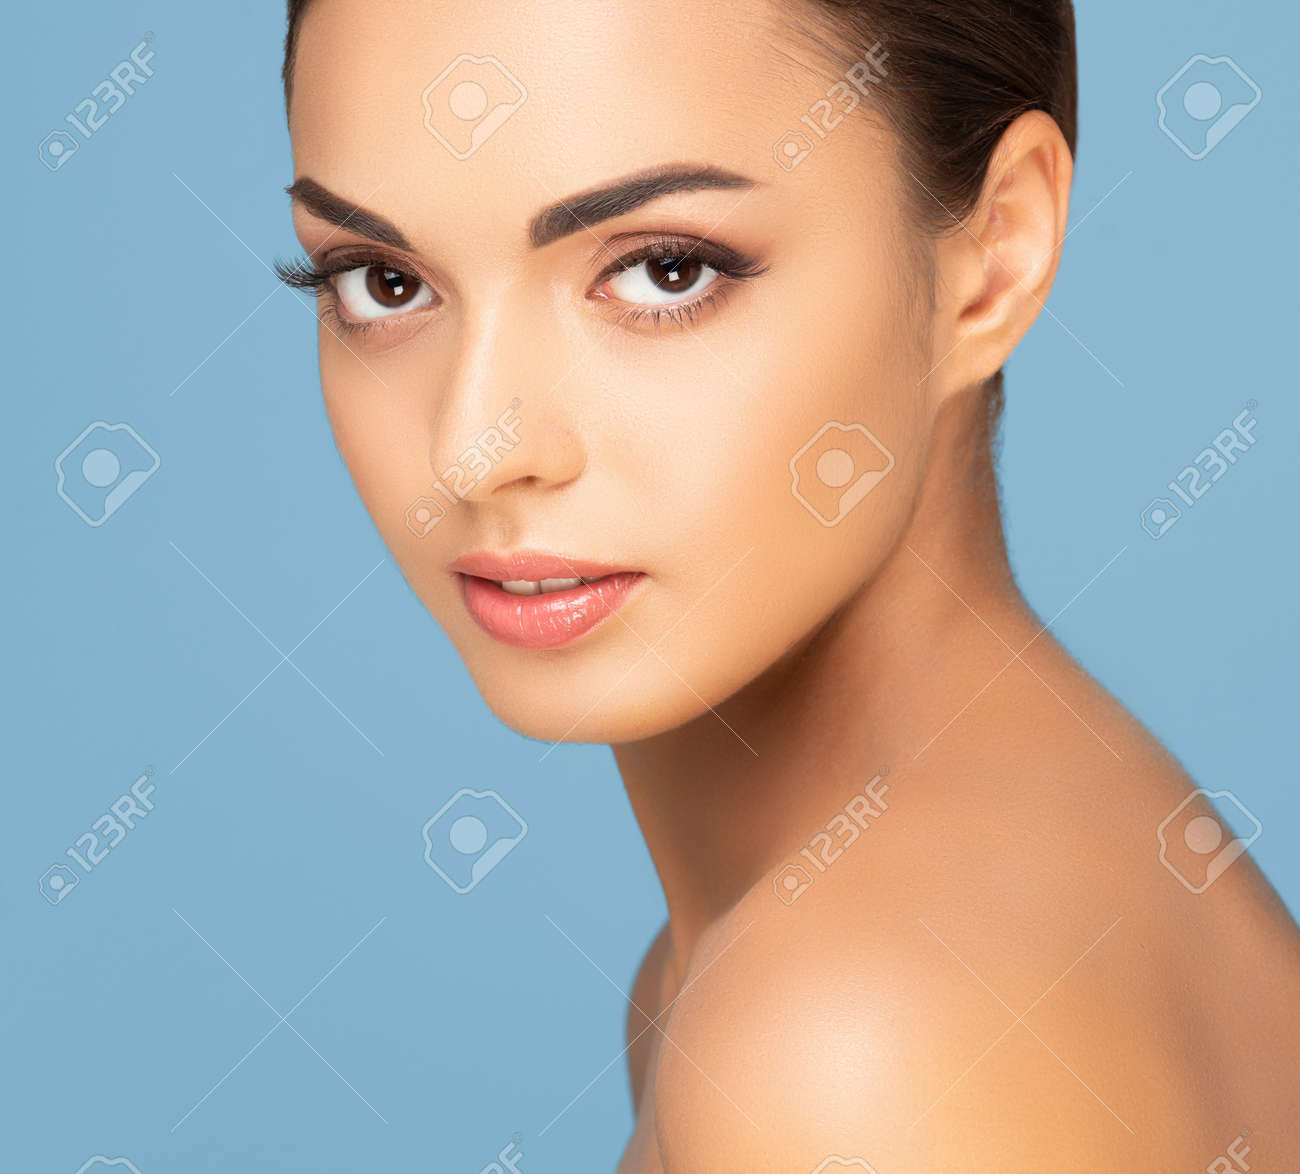 Beautiful face of young and healthy woman. Spa, cosmetology and healthcare. - 167106047